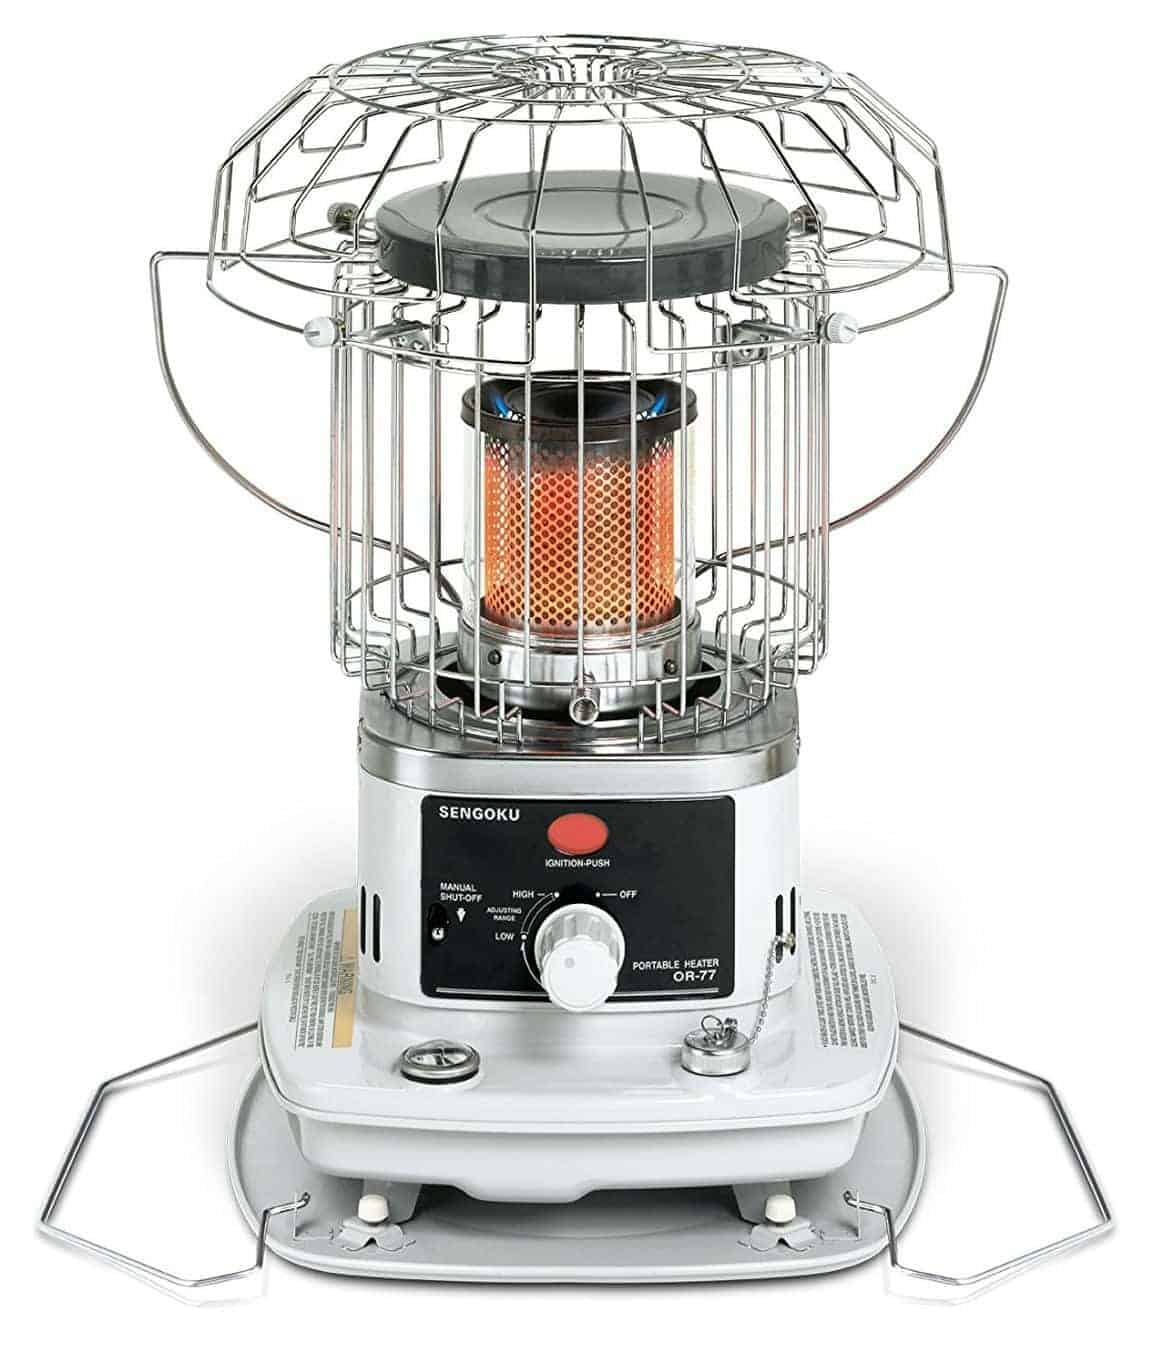 Sengoku HeatMate 10,000-BTU Indoor/Outdoor Omni-Radiant Portable Kerosene Heater